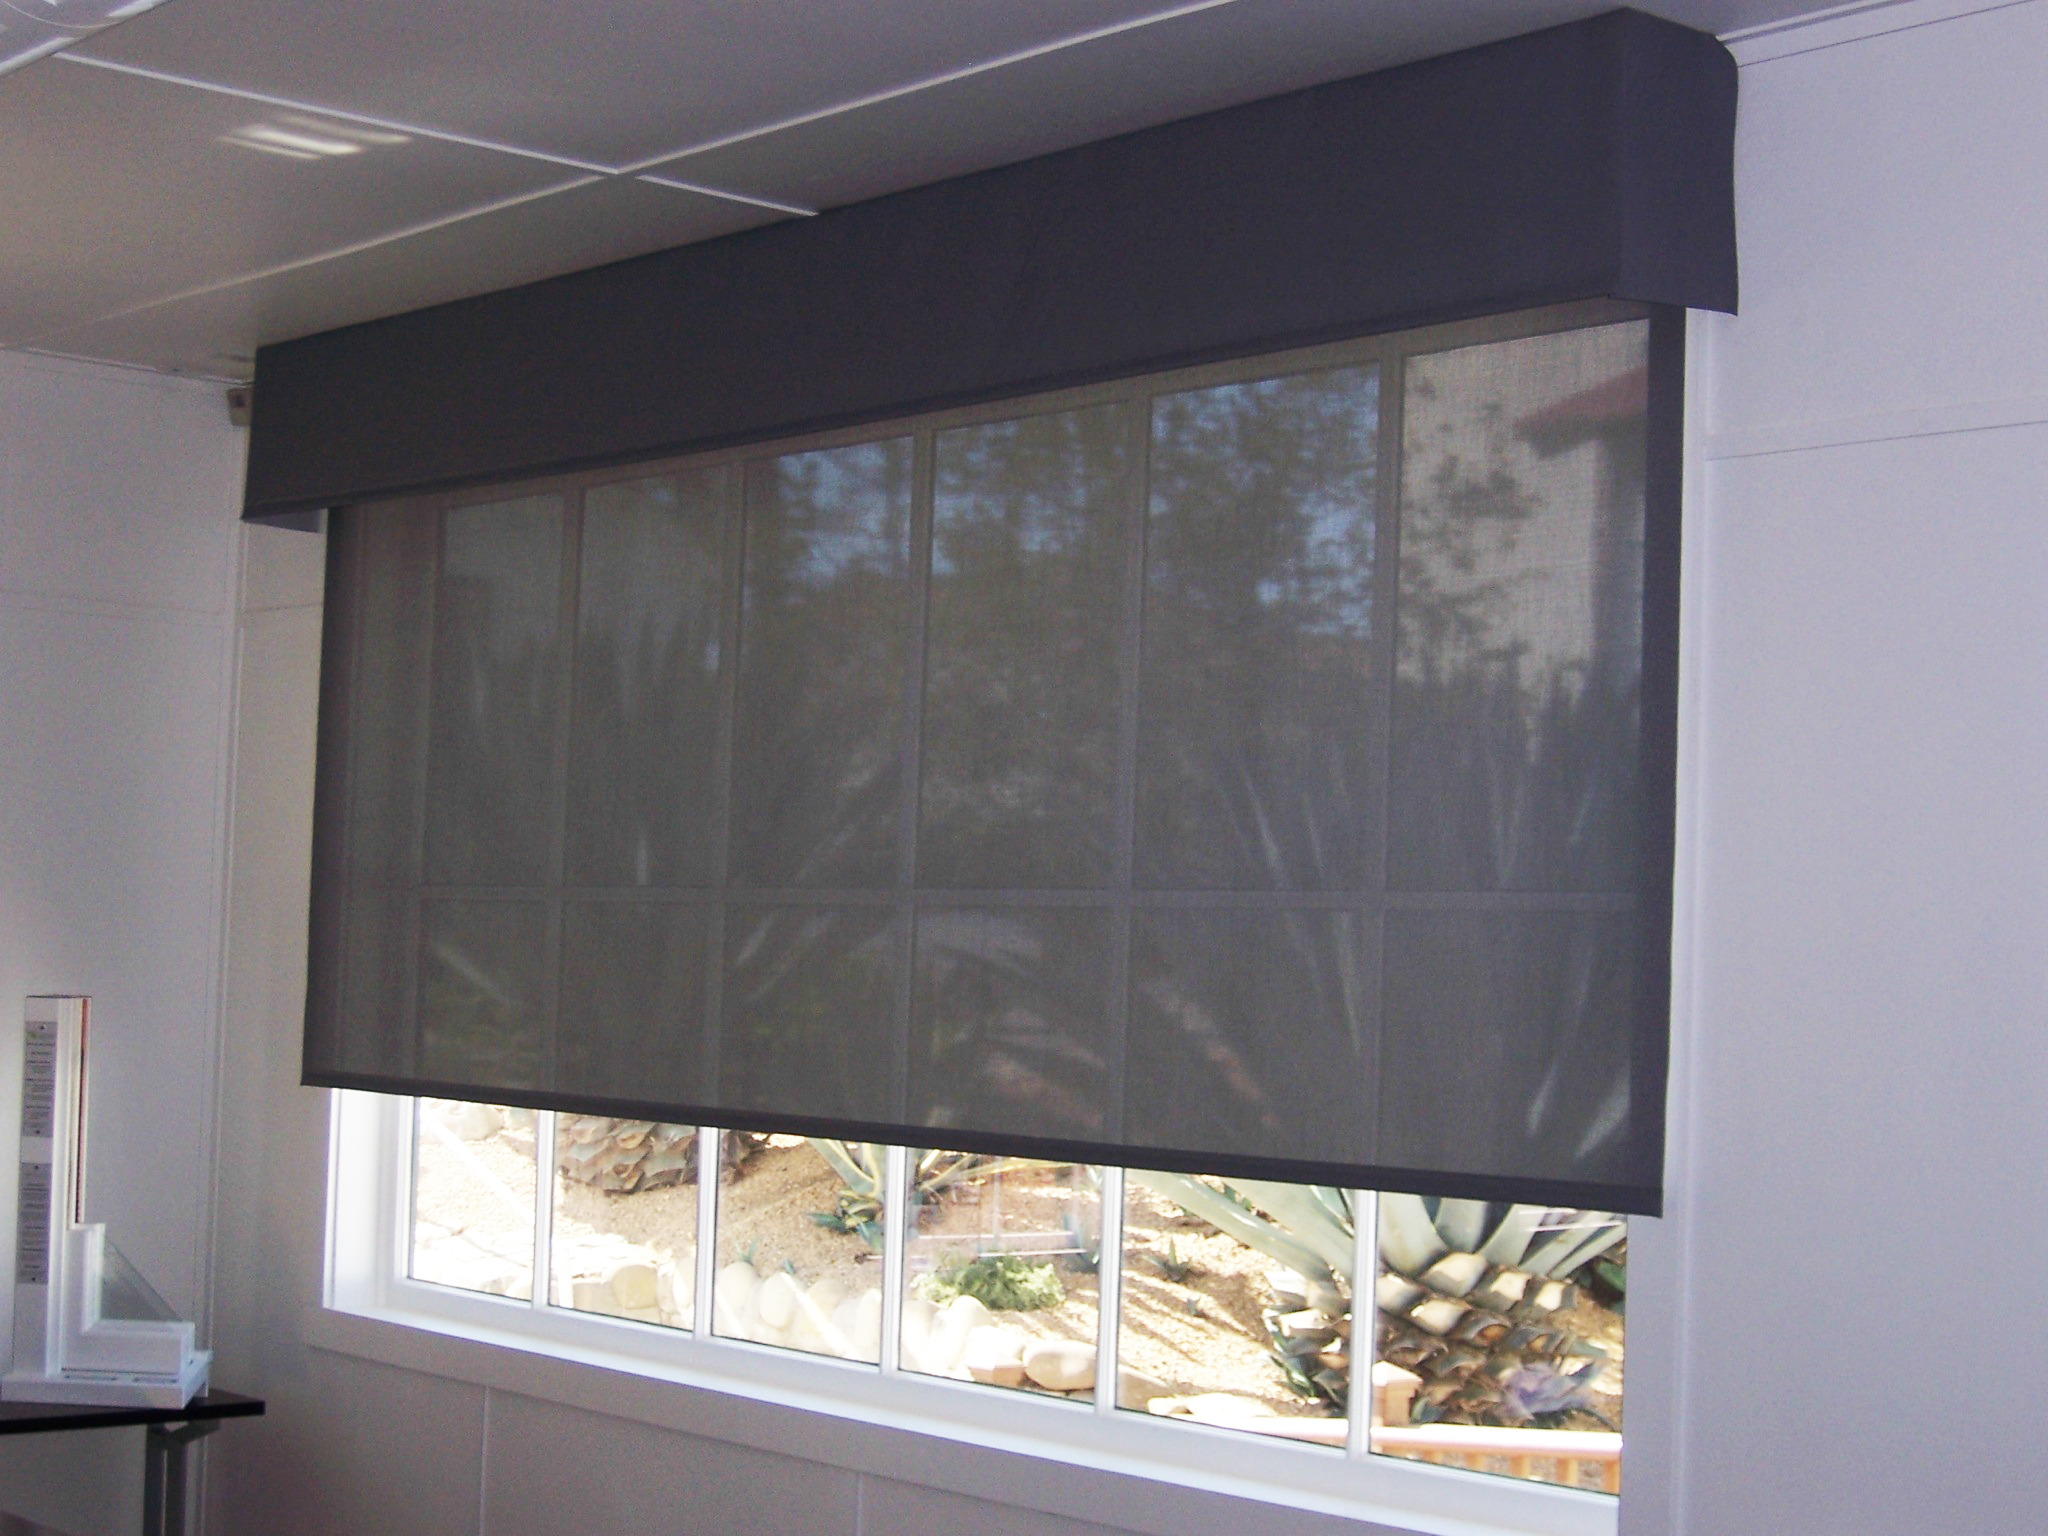 Solar film thermal efficiency mechoshade window products project description 1betcityfo Image collections